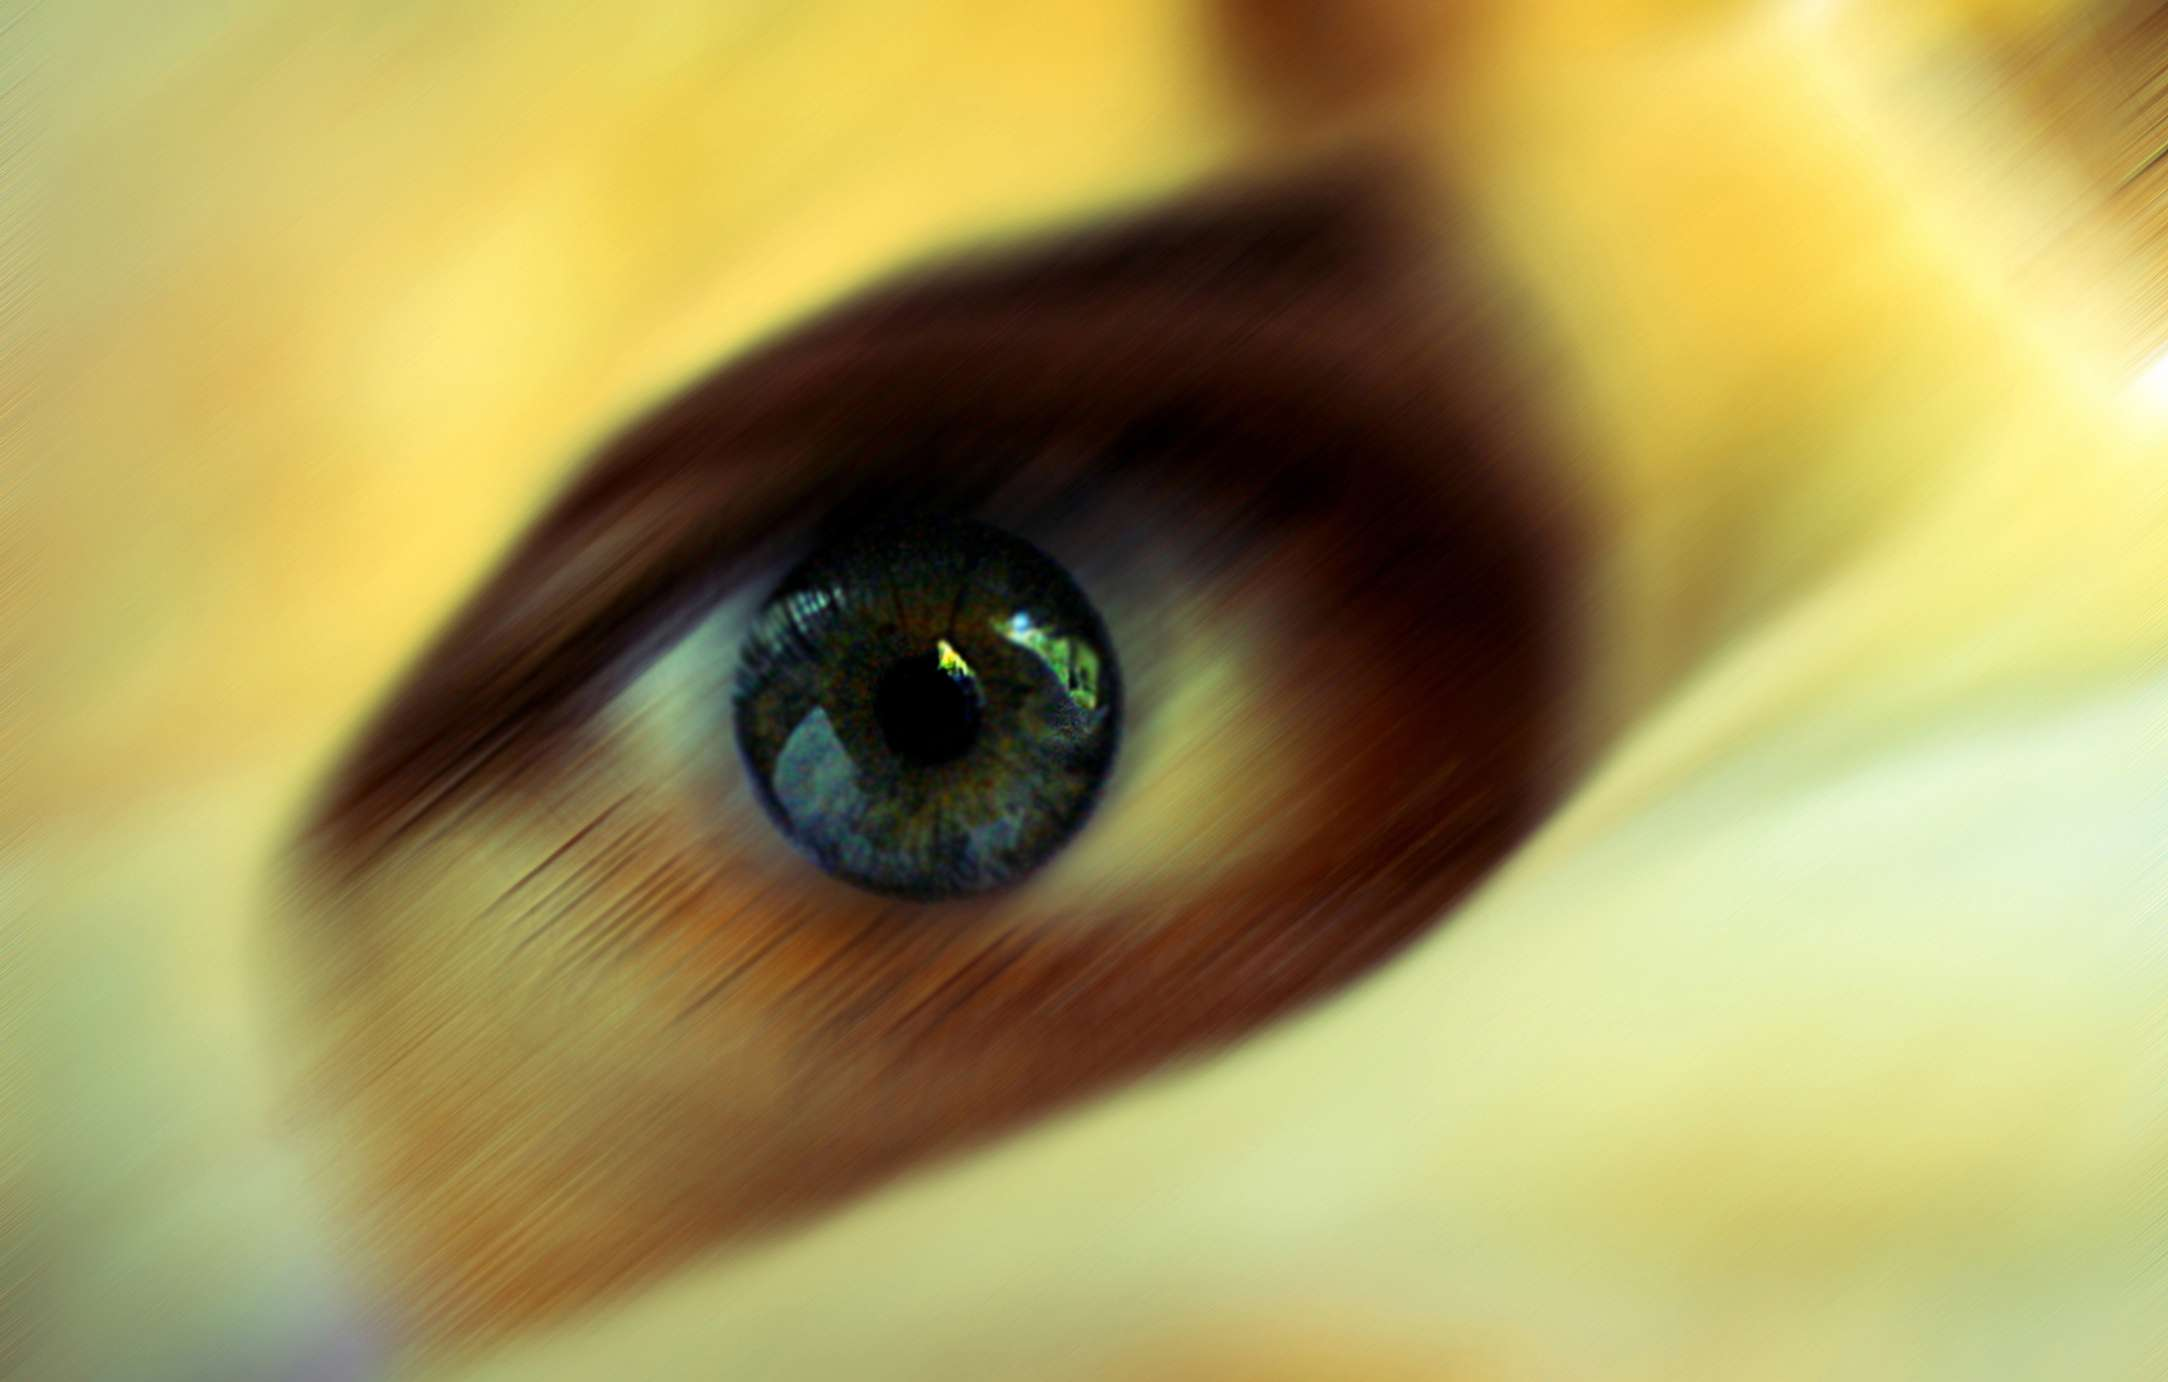 Detail of a person's eye